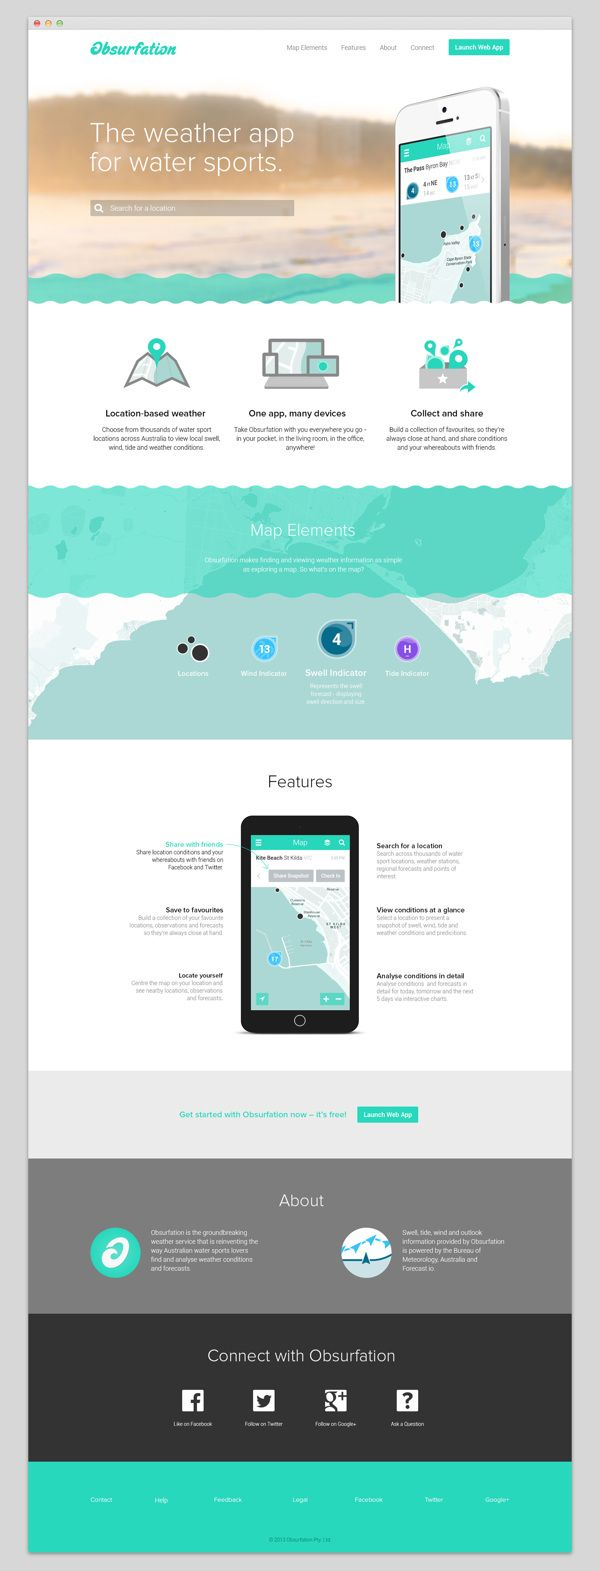 App or service website homepage design layout also obsurfation branding by pennant via behance ui rh za pinterest